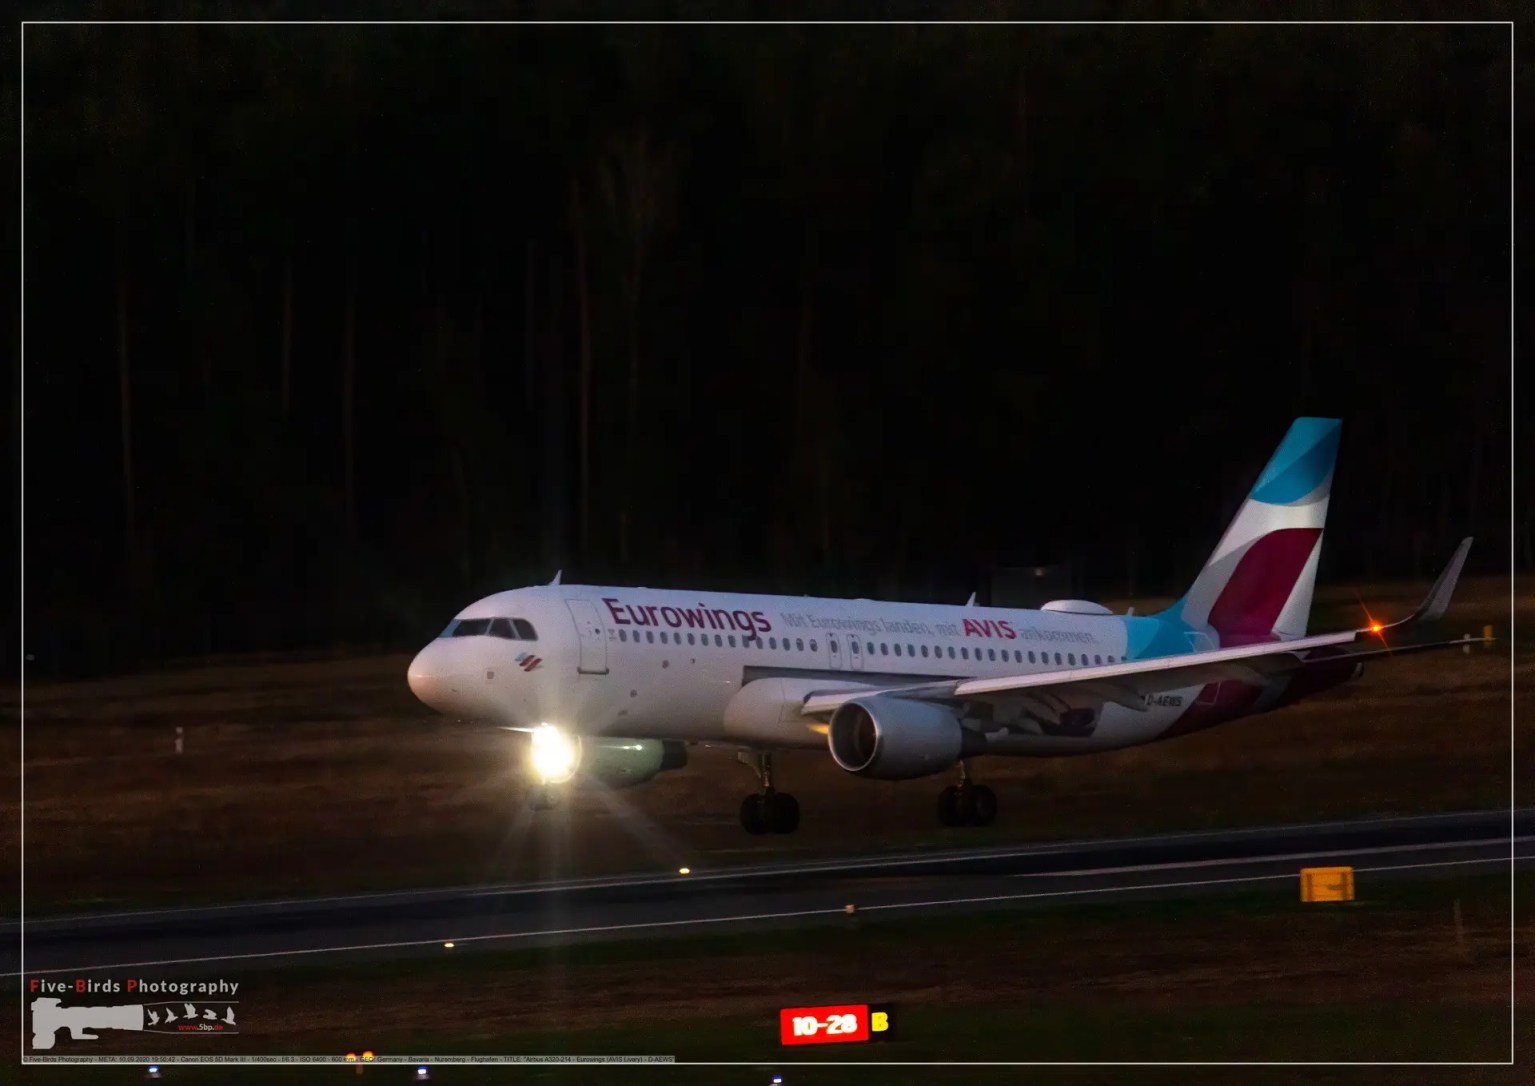 Airbus A320-214 - Eurowings (AVIS Livery) - D-AEWS